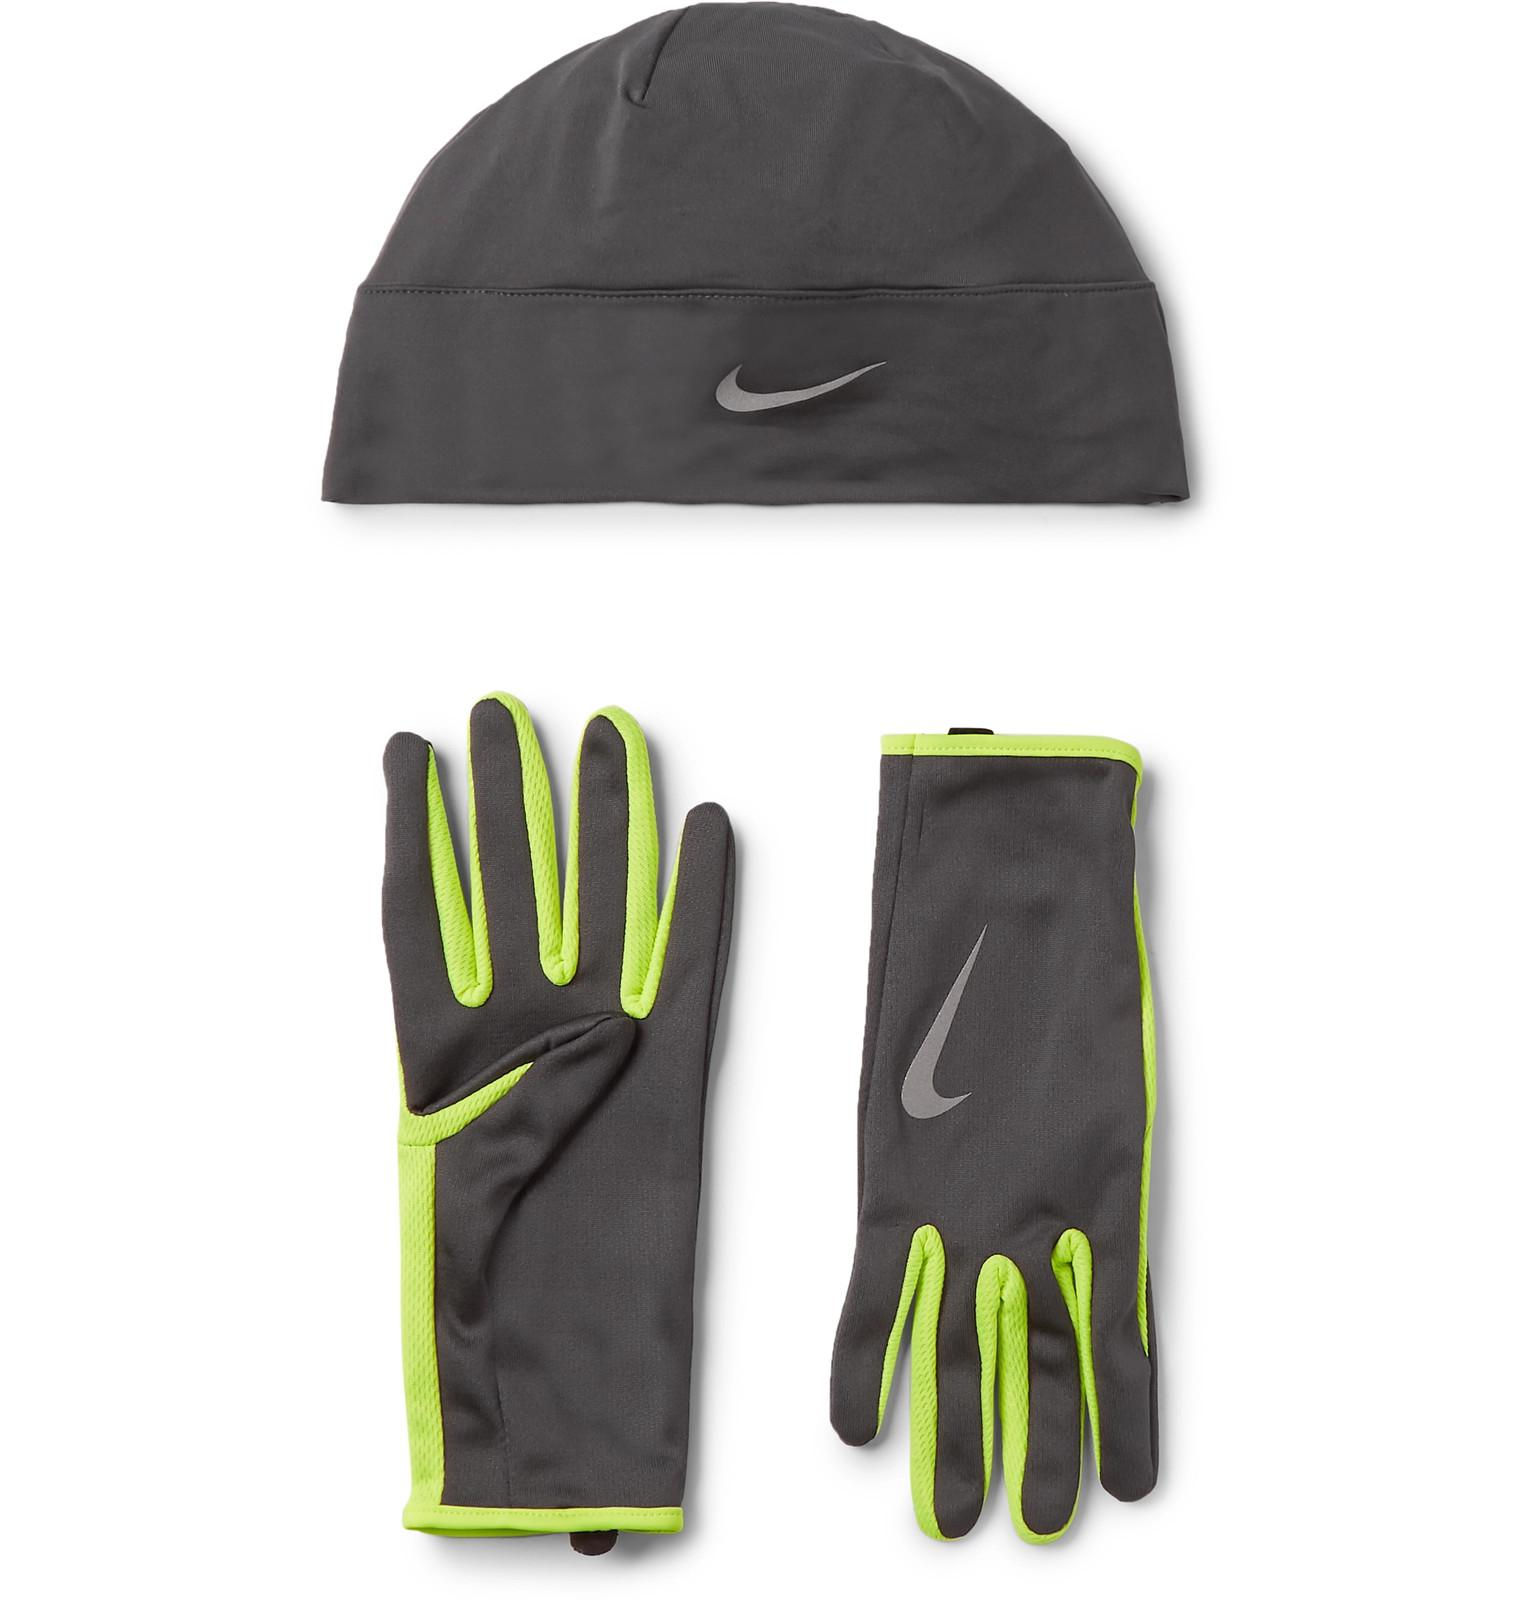 0c7af228b23 Nike Dri-fit Hat And Gloves Set in Gray for Men - Lyst